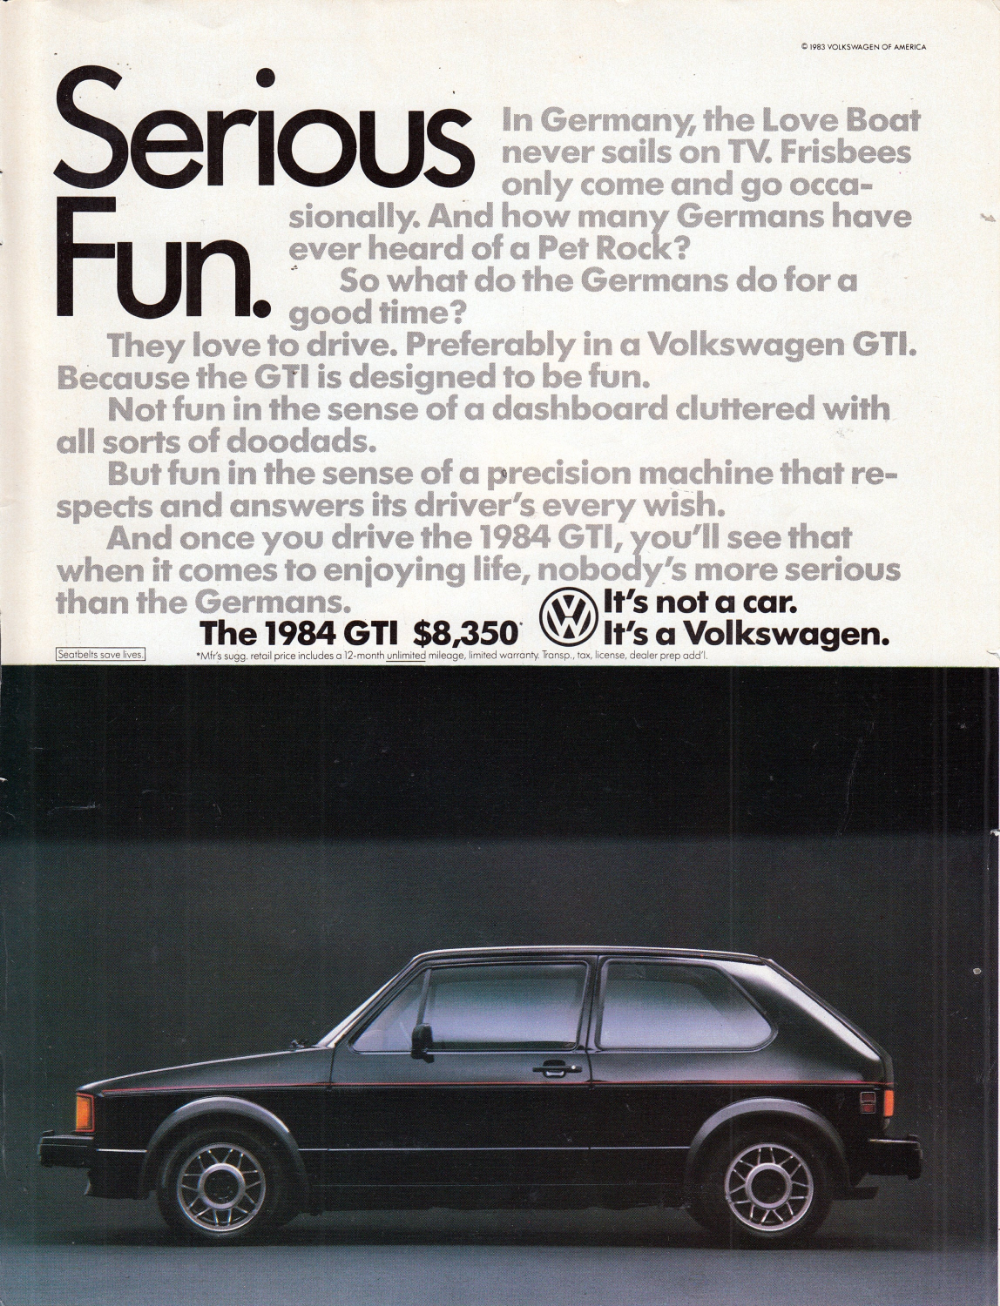 1984 Vw Gti Volkswagen Serious Fun Not A Car Cost Etsy Volkswagen Gti Volkswagen Gti